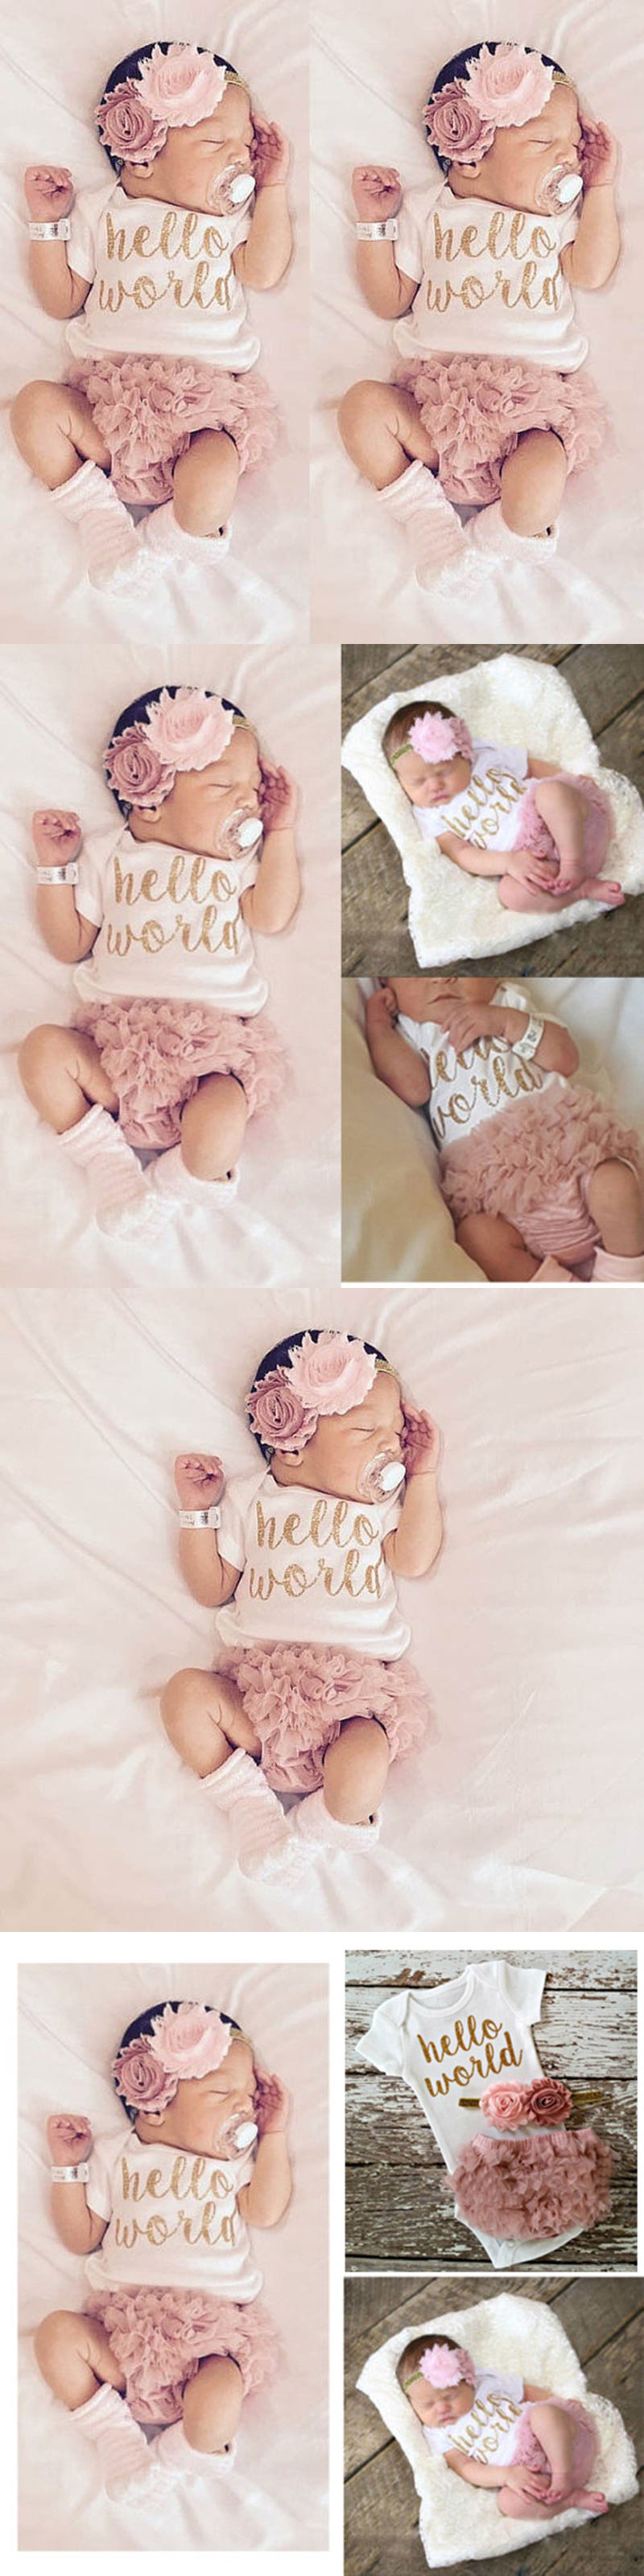 Baby Girls Clothing: 3Pcs Summer Newborn Romper Flower Infant Baby Girls Clothes Jumpsuit Bodysuit Us -> BUY IT NOW ONLY: $9.99 on eBay!